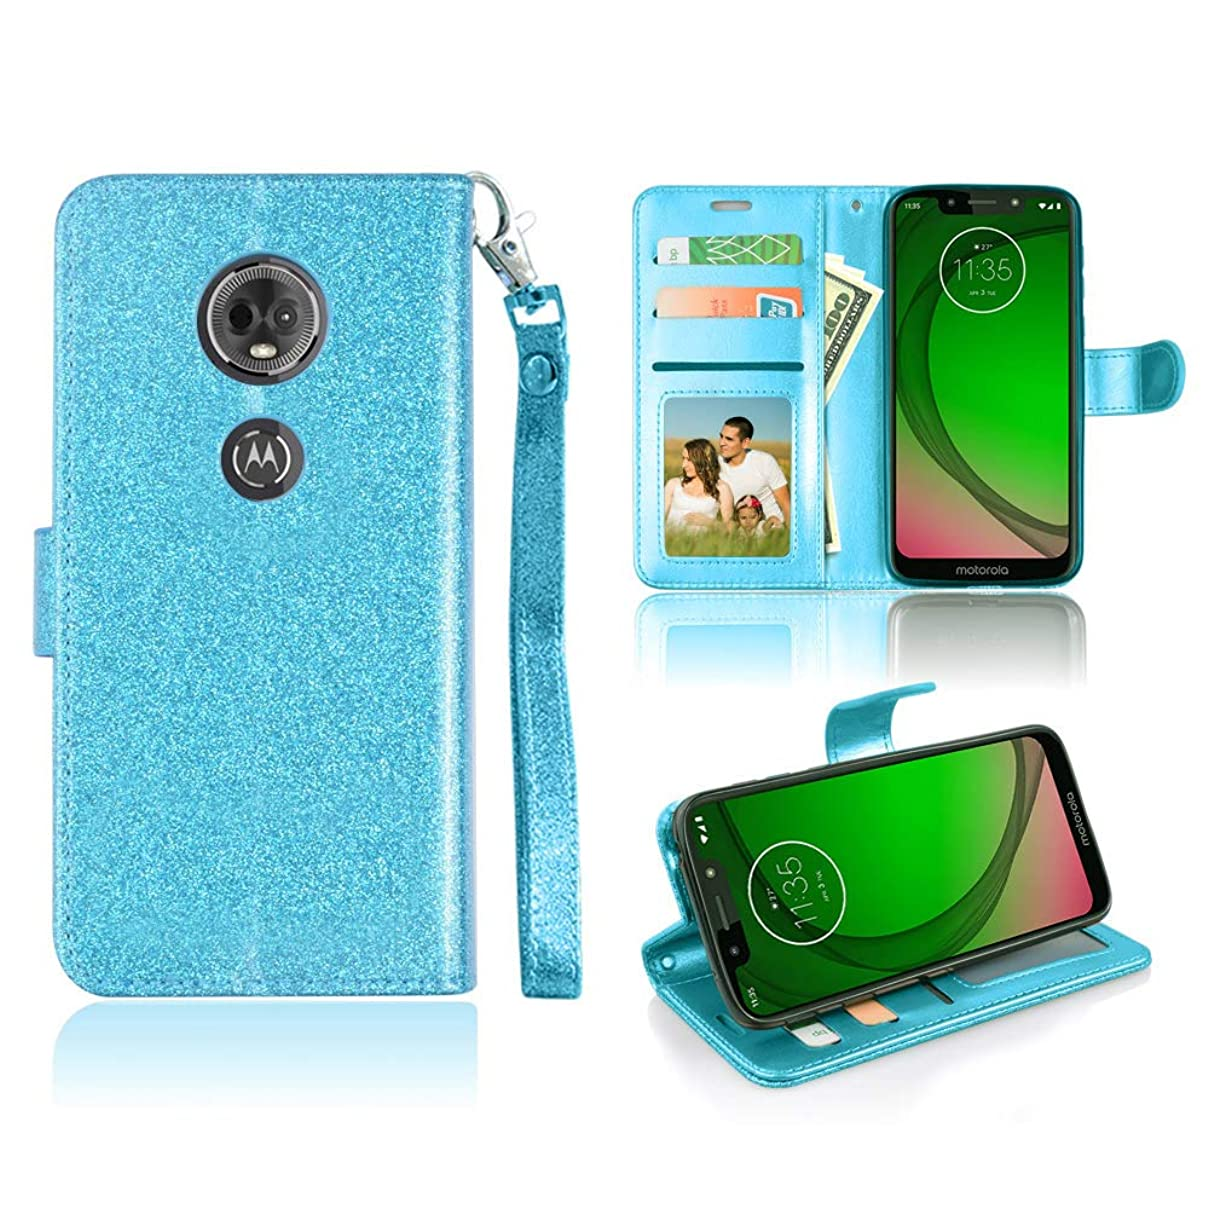 Design for Moto E5 Plus Case, Moto E5 Supra/Motorola Moto E Plus 5th Gen Case 6goodeals Sparkle Wallet Case Glitter Credit Card Slots Cash Holder Bling Flip Case [Accessory Pack] (Teal) xbkdggnrbfb6